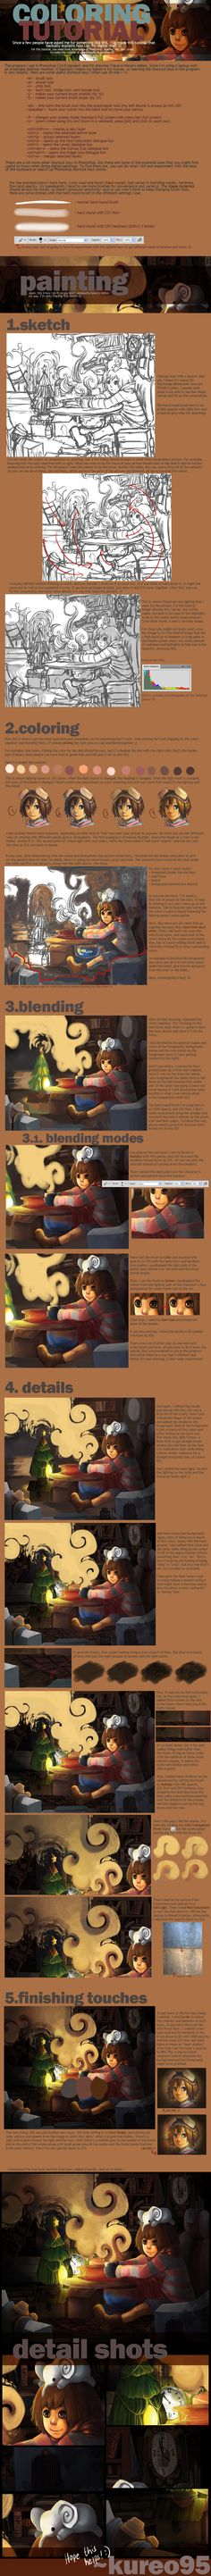 Coloring Tutorial by kureo95.deviantart.com on @deviantART